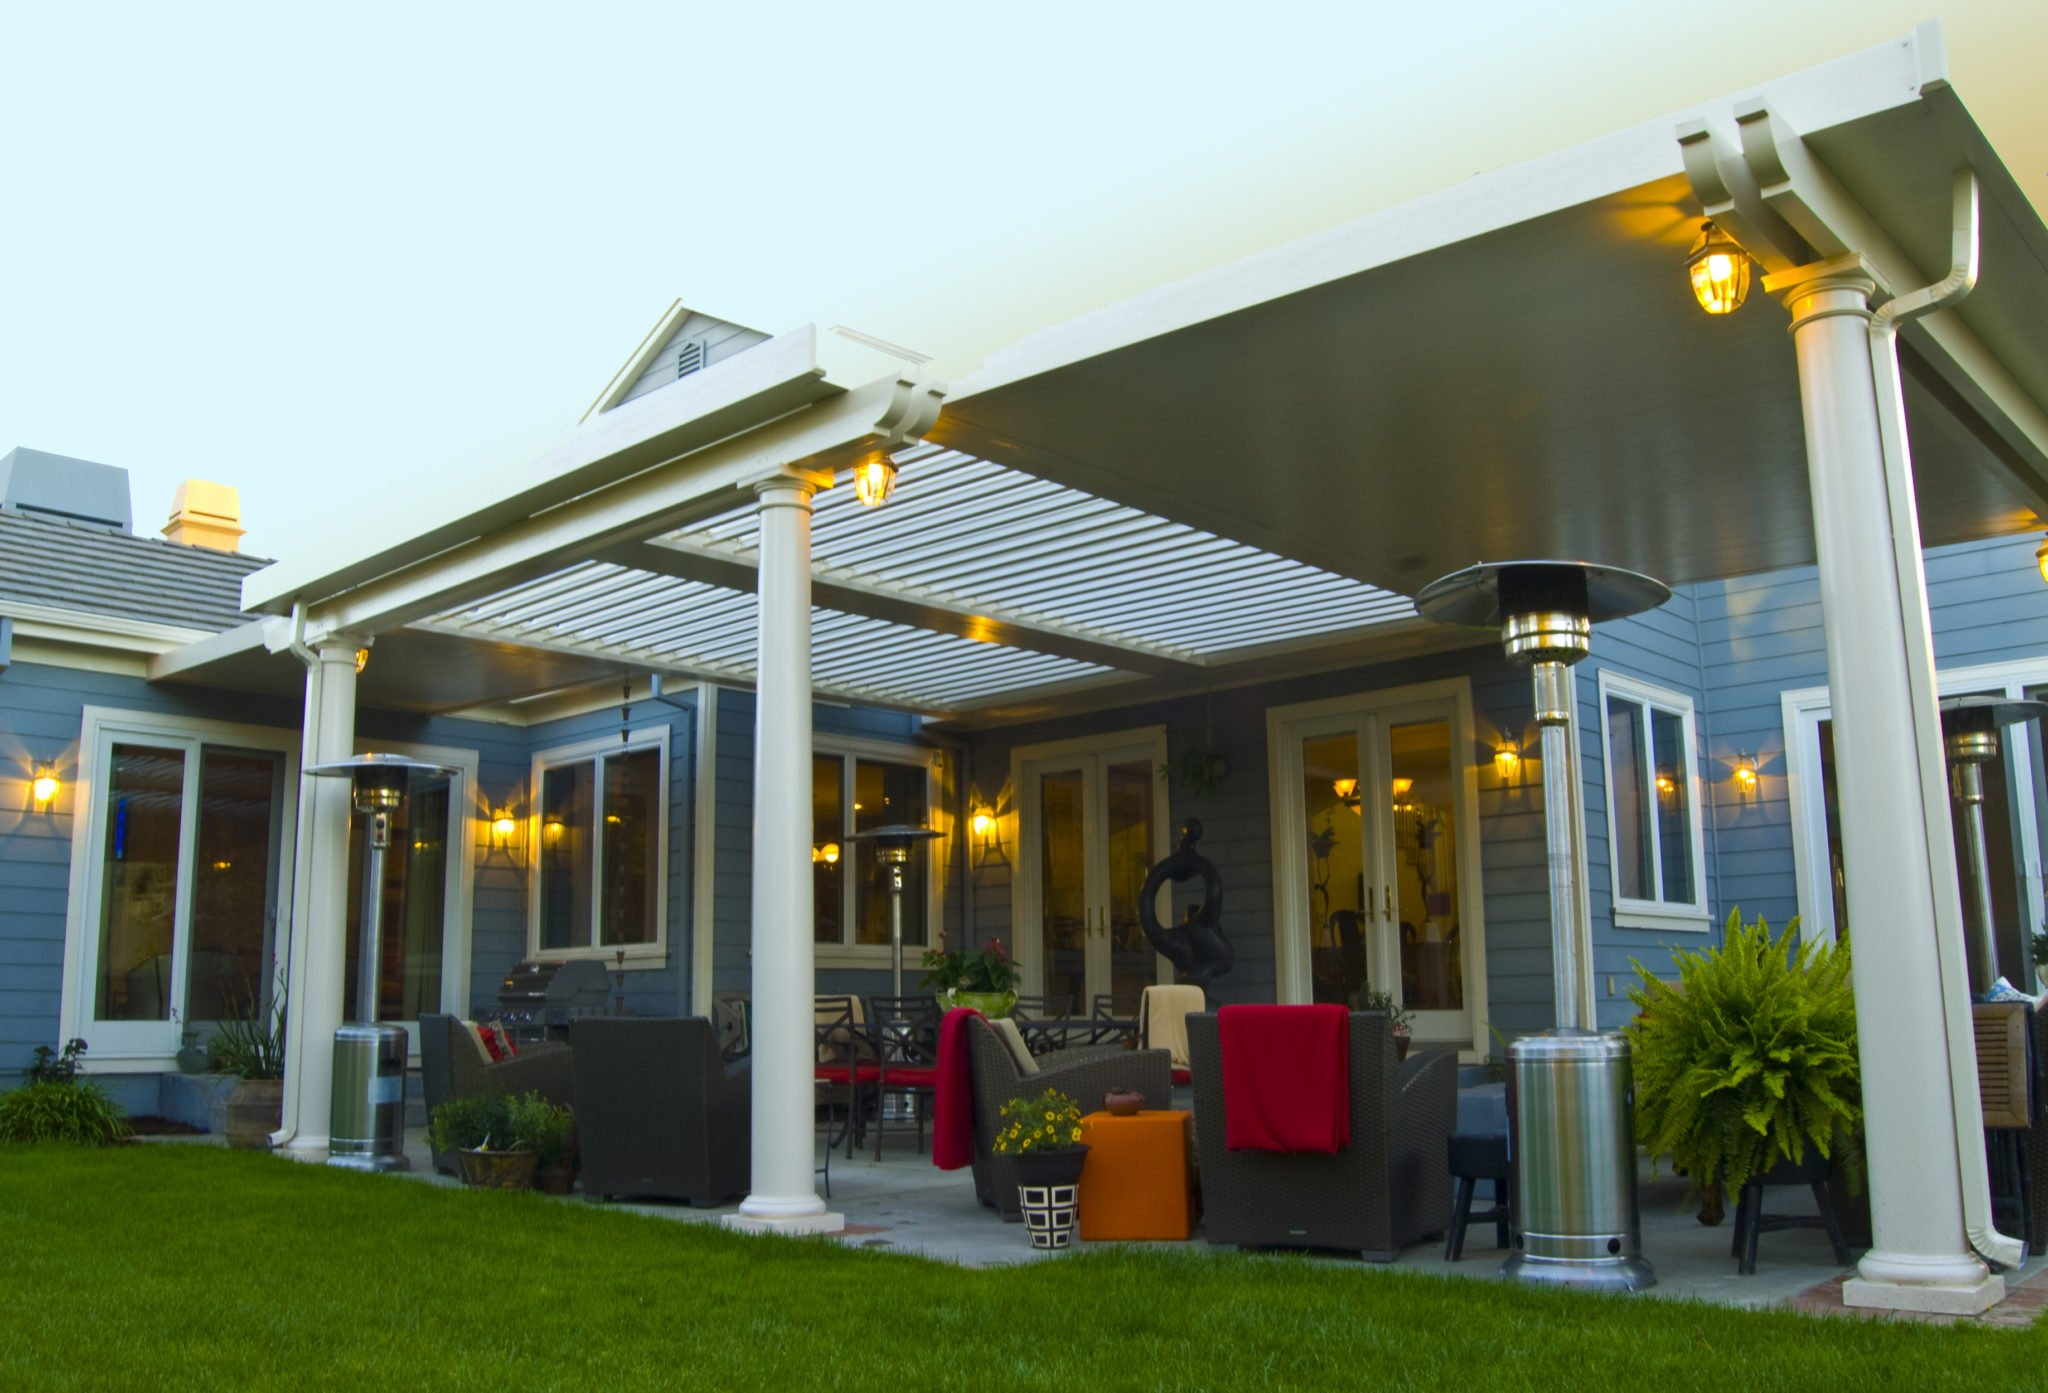 When You Add A New Patio Cover To Your Home, You Are Making A Statement  About Yourself And Your Place In The Community.